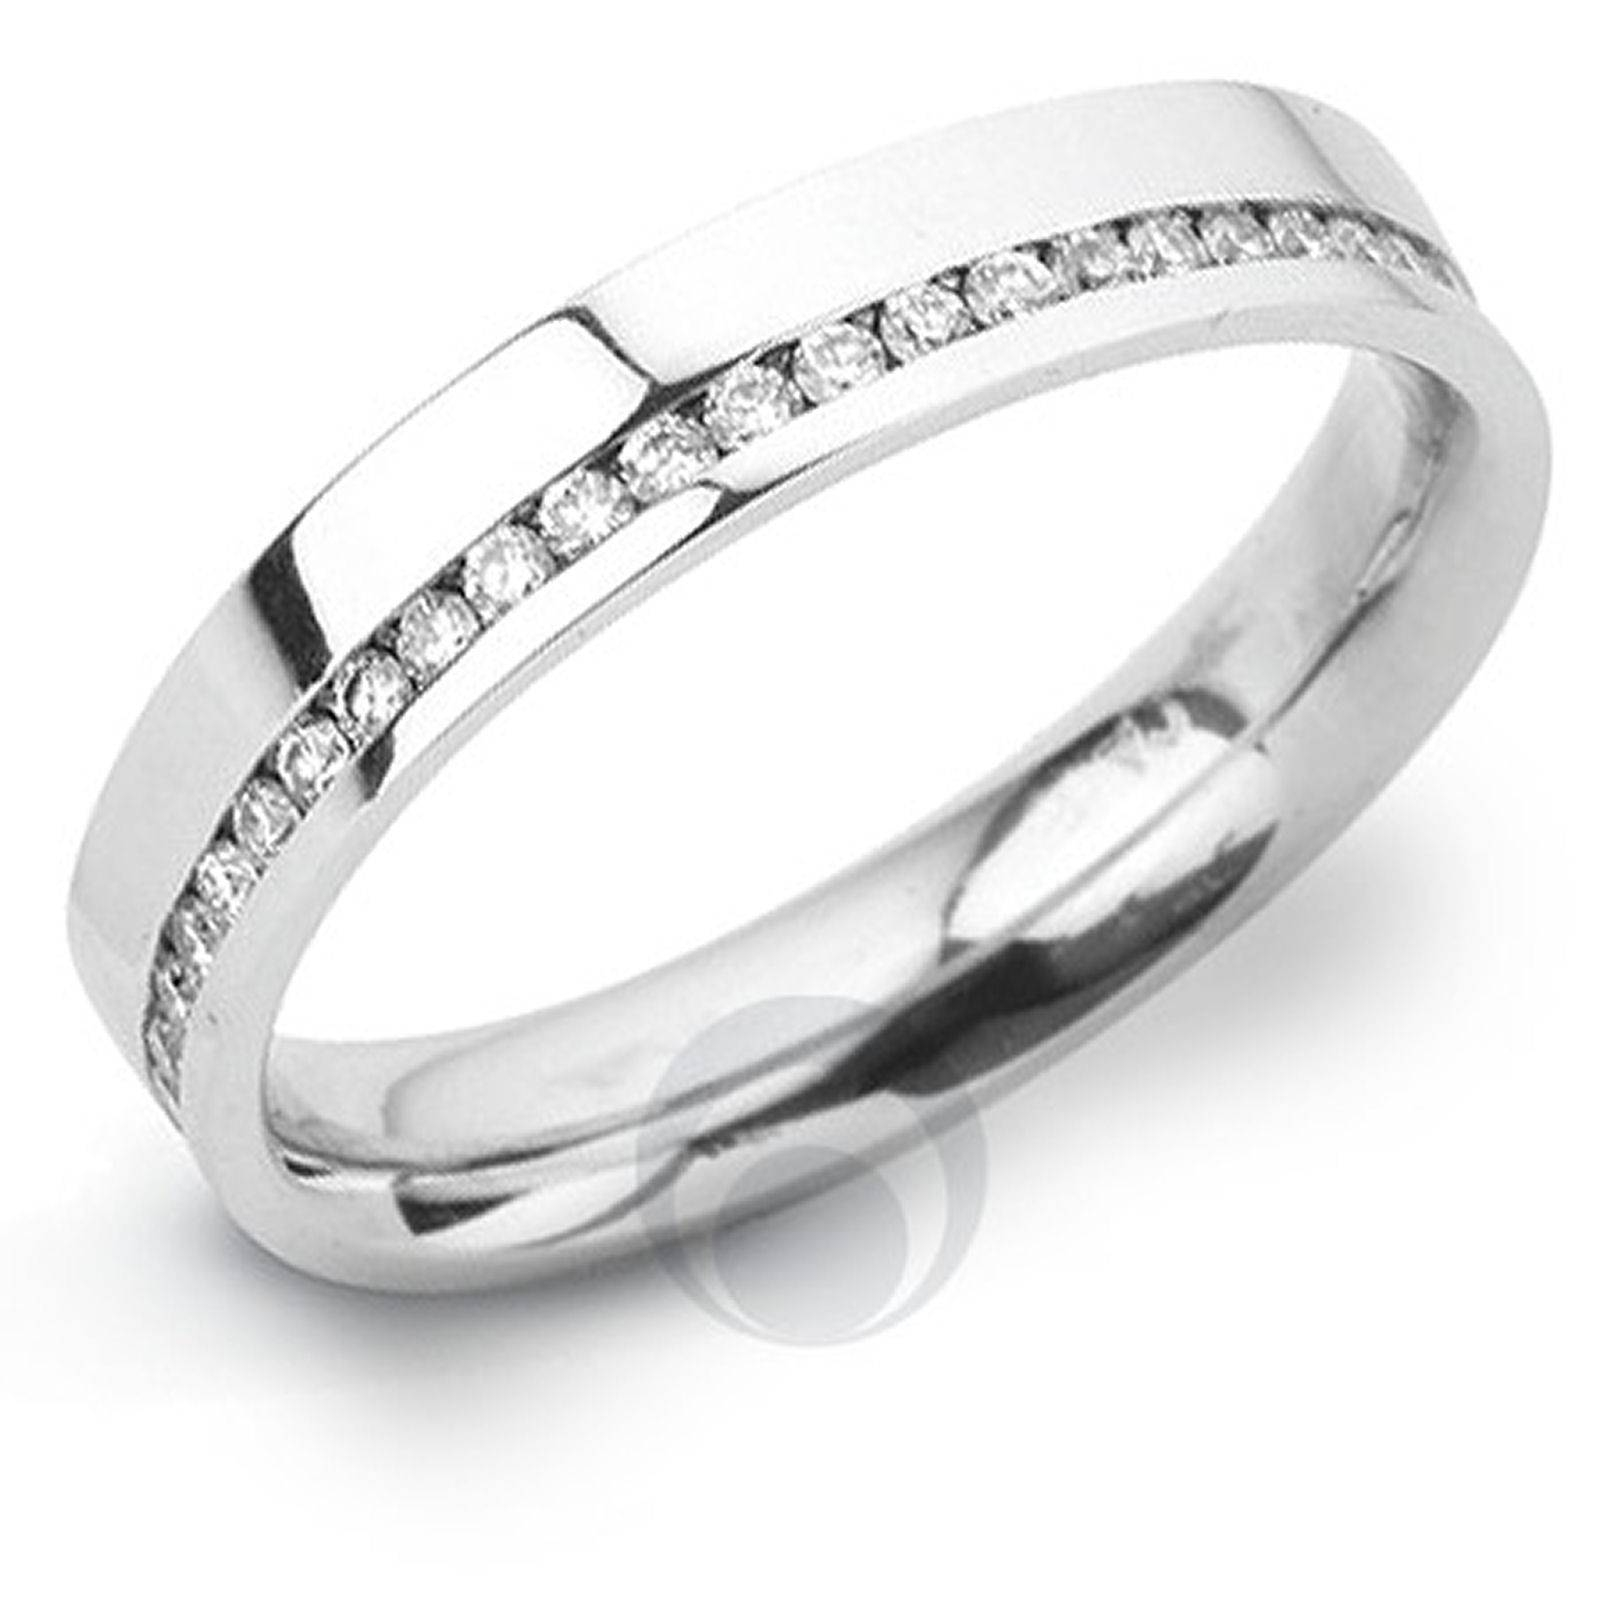 Channel Diamond Platinum Wedding Ring Wedding Dress From The In Platinum And Diamond Wedding Rings (View 2 of 15)